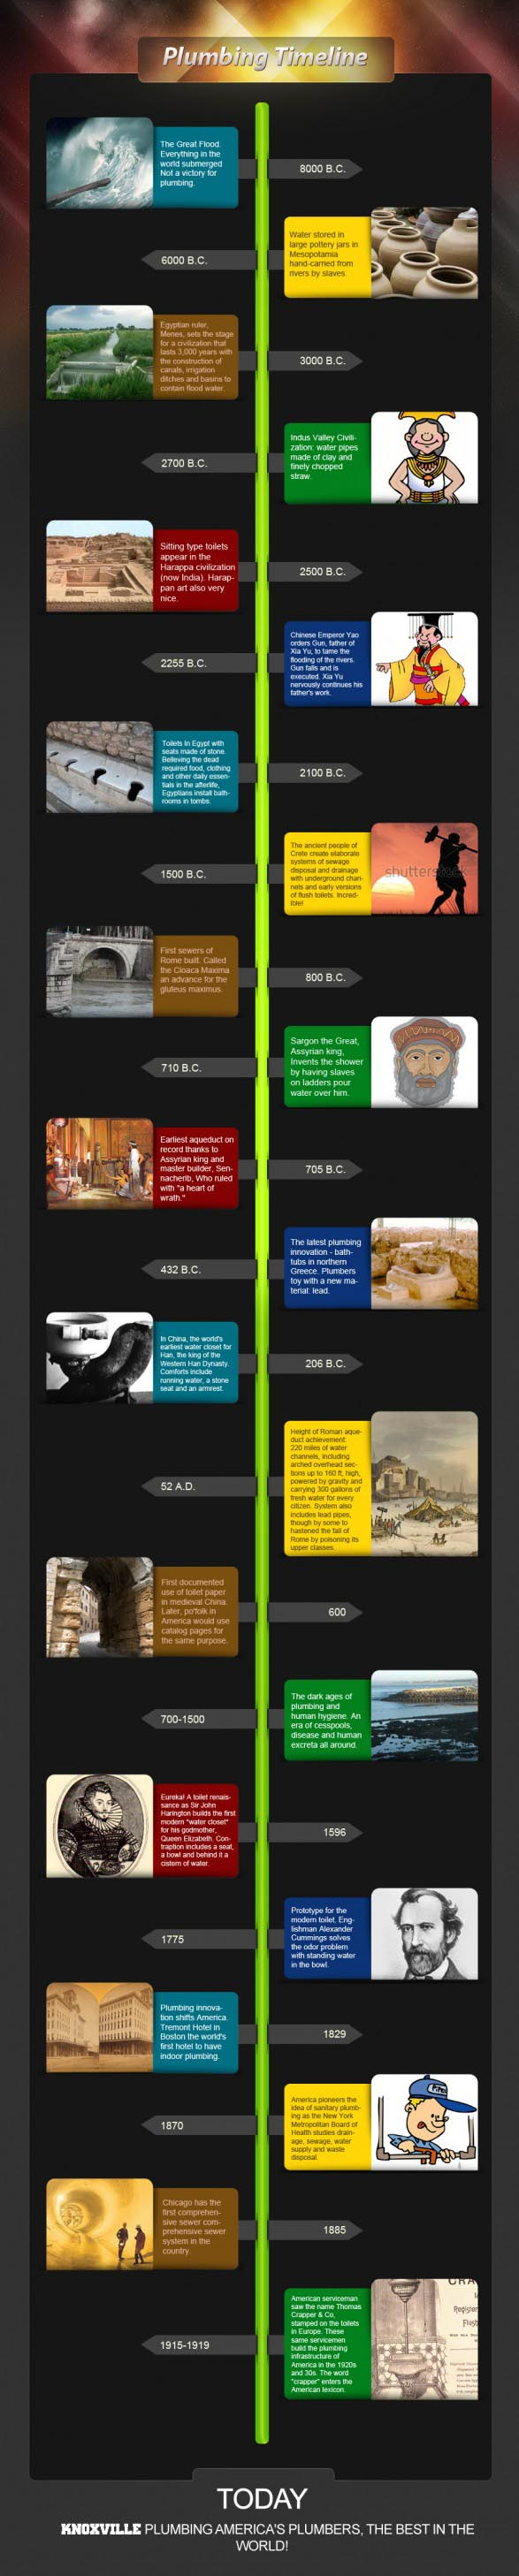 History of Plumbing | Knoxville Plumber | Timeline